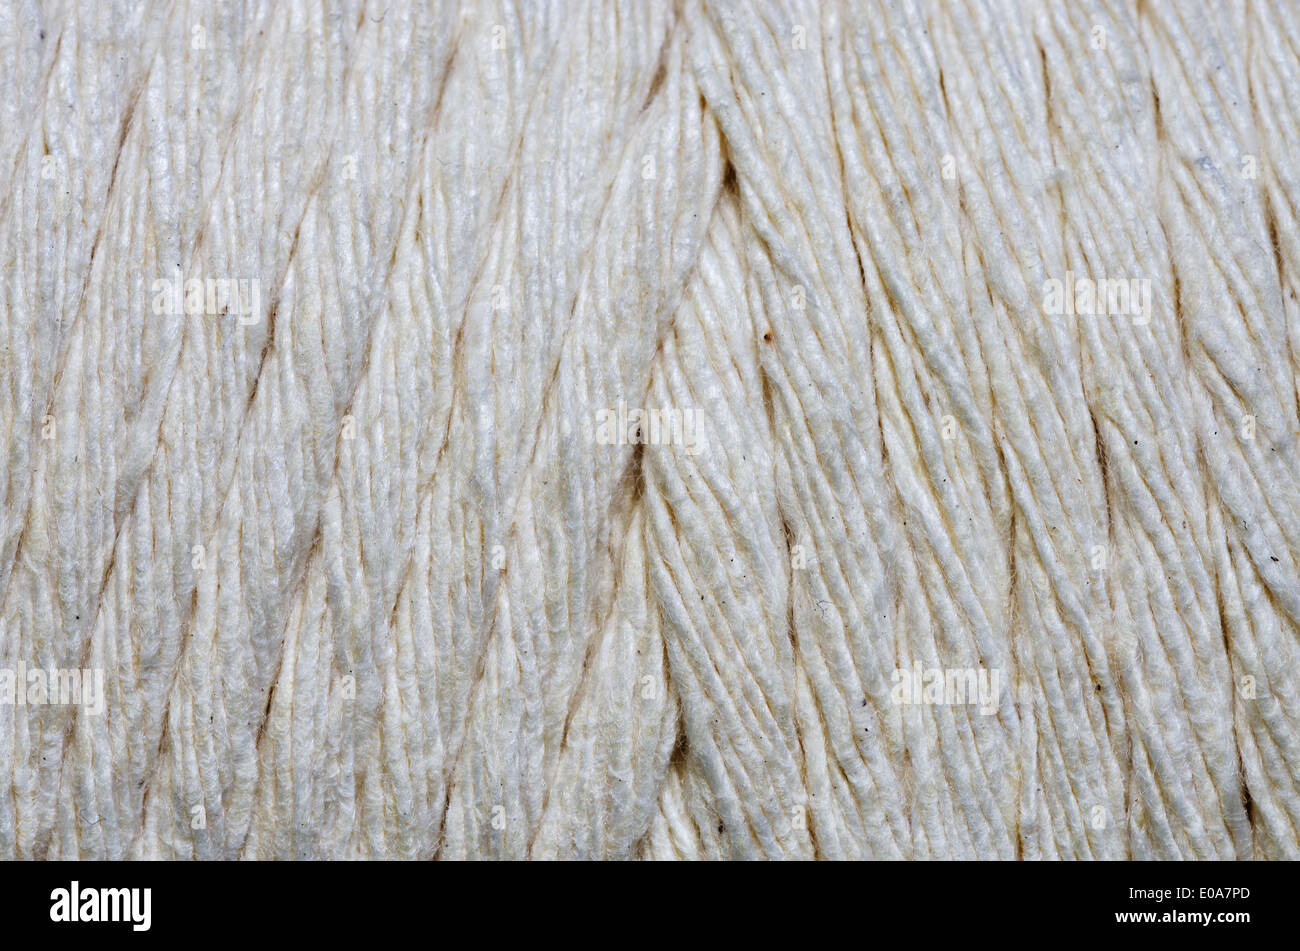 macro image of a spool of string for background - Stock Image